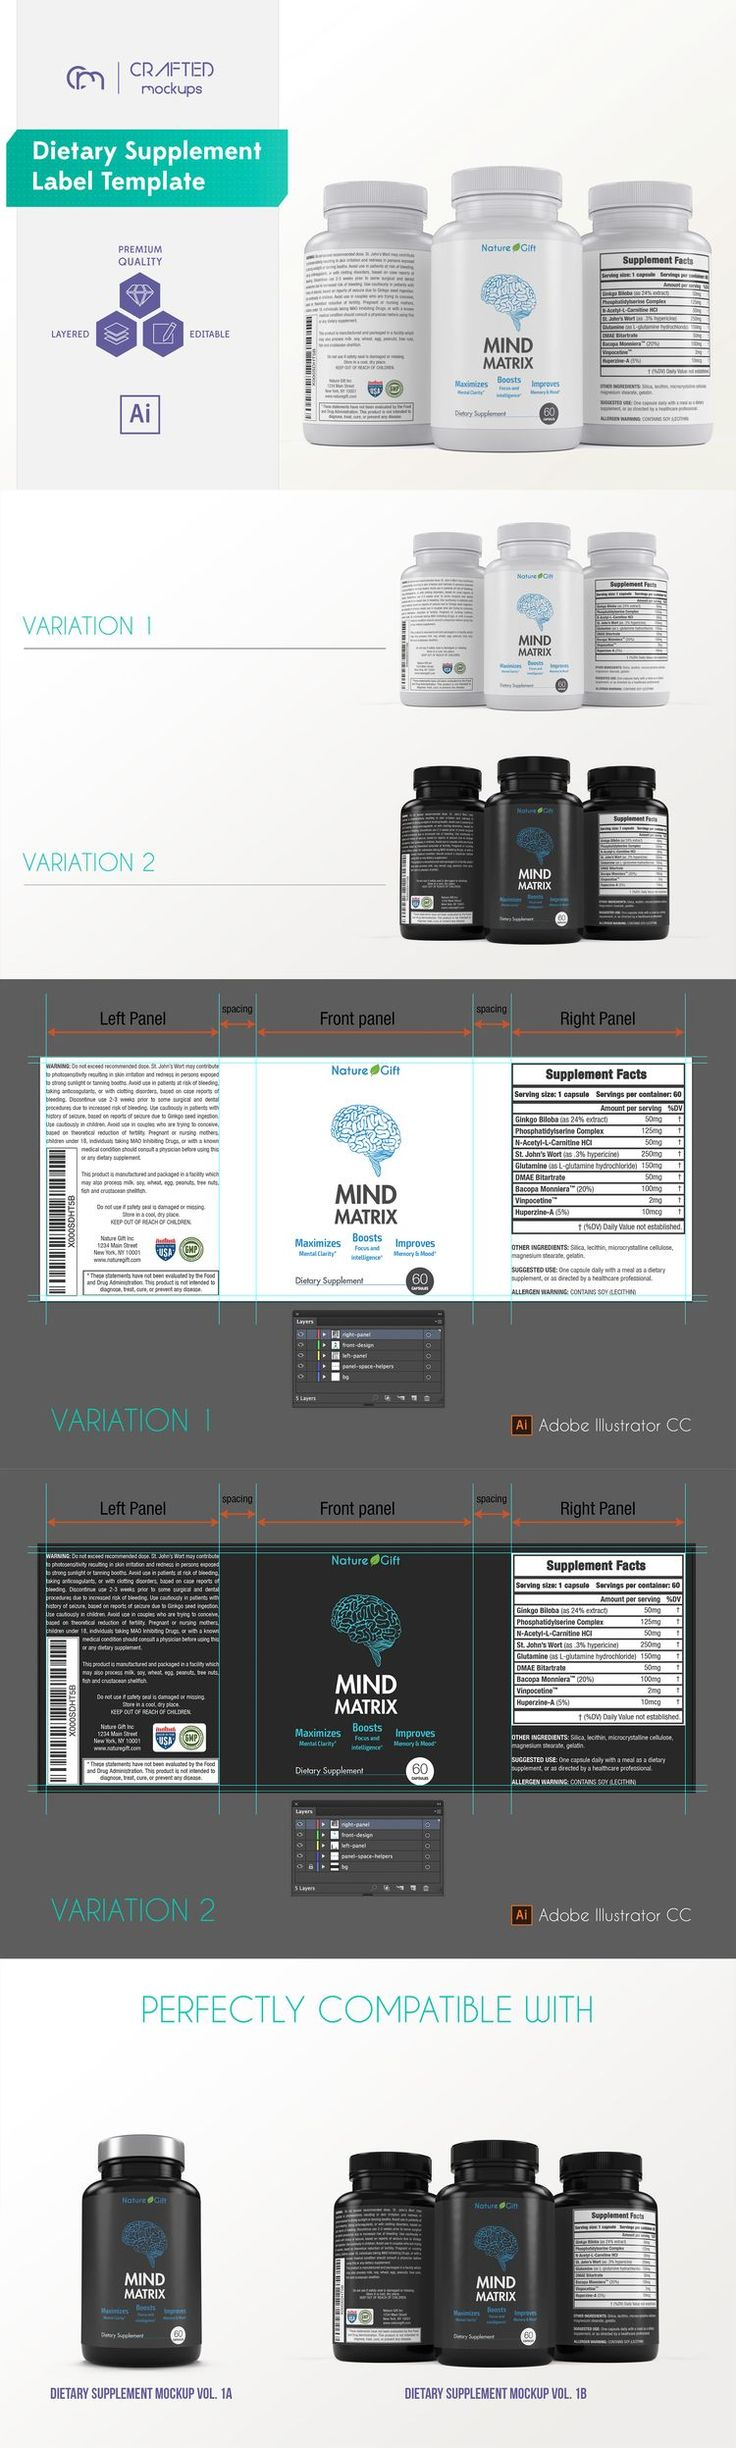 nutrition / dietary supplement design / dietary supplement label / dietary supplement label template / label design template / packaging design | By Crafted Mockups on @Creative Market #vitaminC #FF #L4L #vitaminA